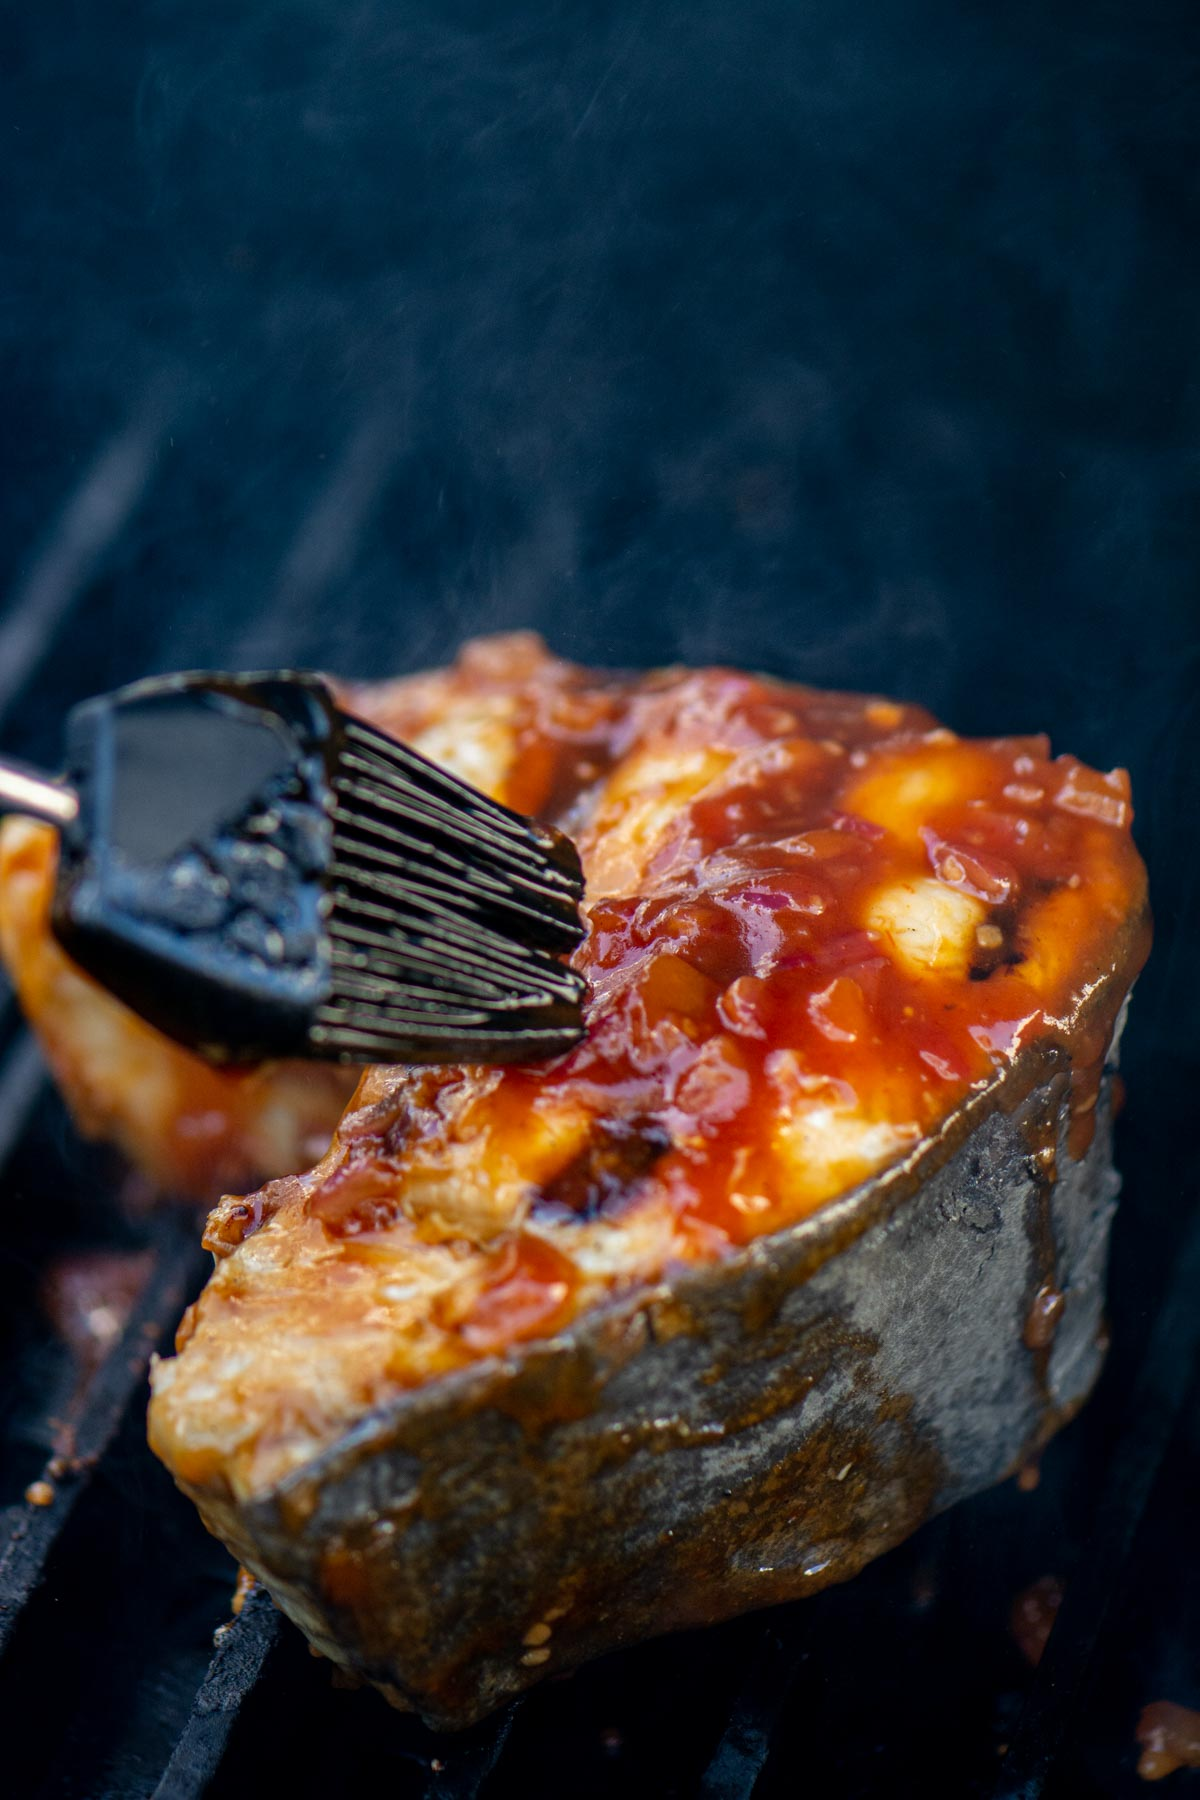 brushing on a homemade sweet and sour sauce on the grilled shark steak.